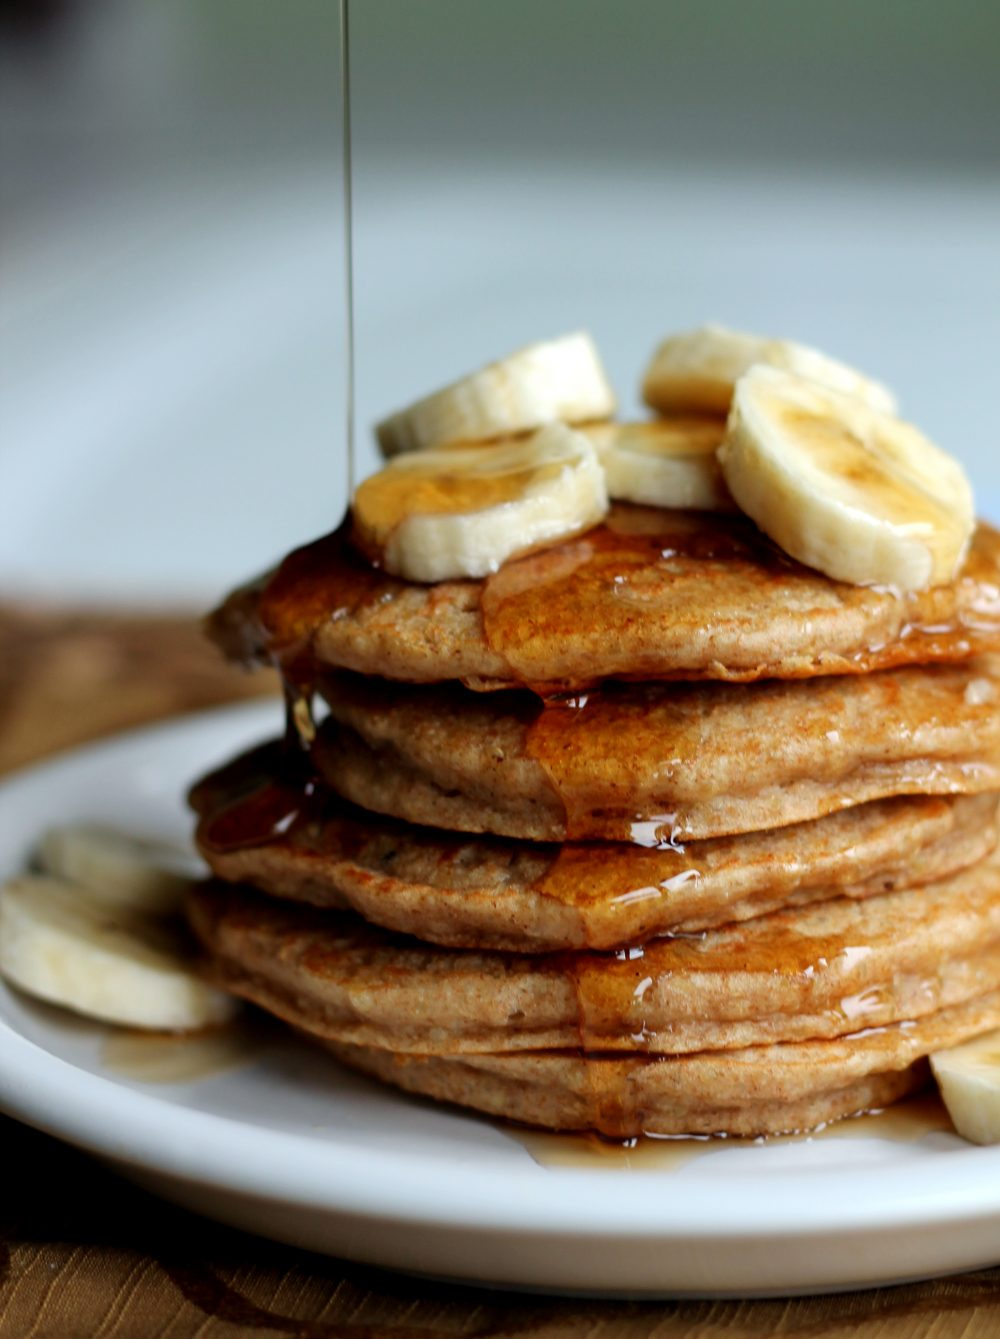 Fluffy whole wheat banana quinoa pancakes being drizzled with syrup on a plate